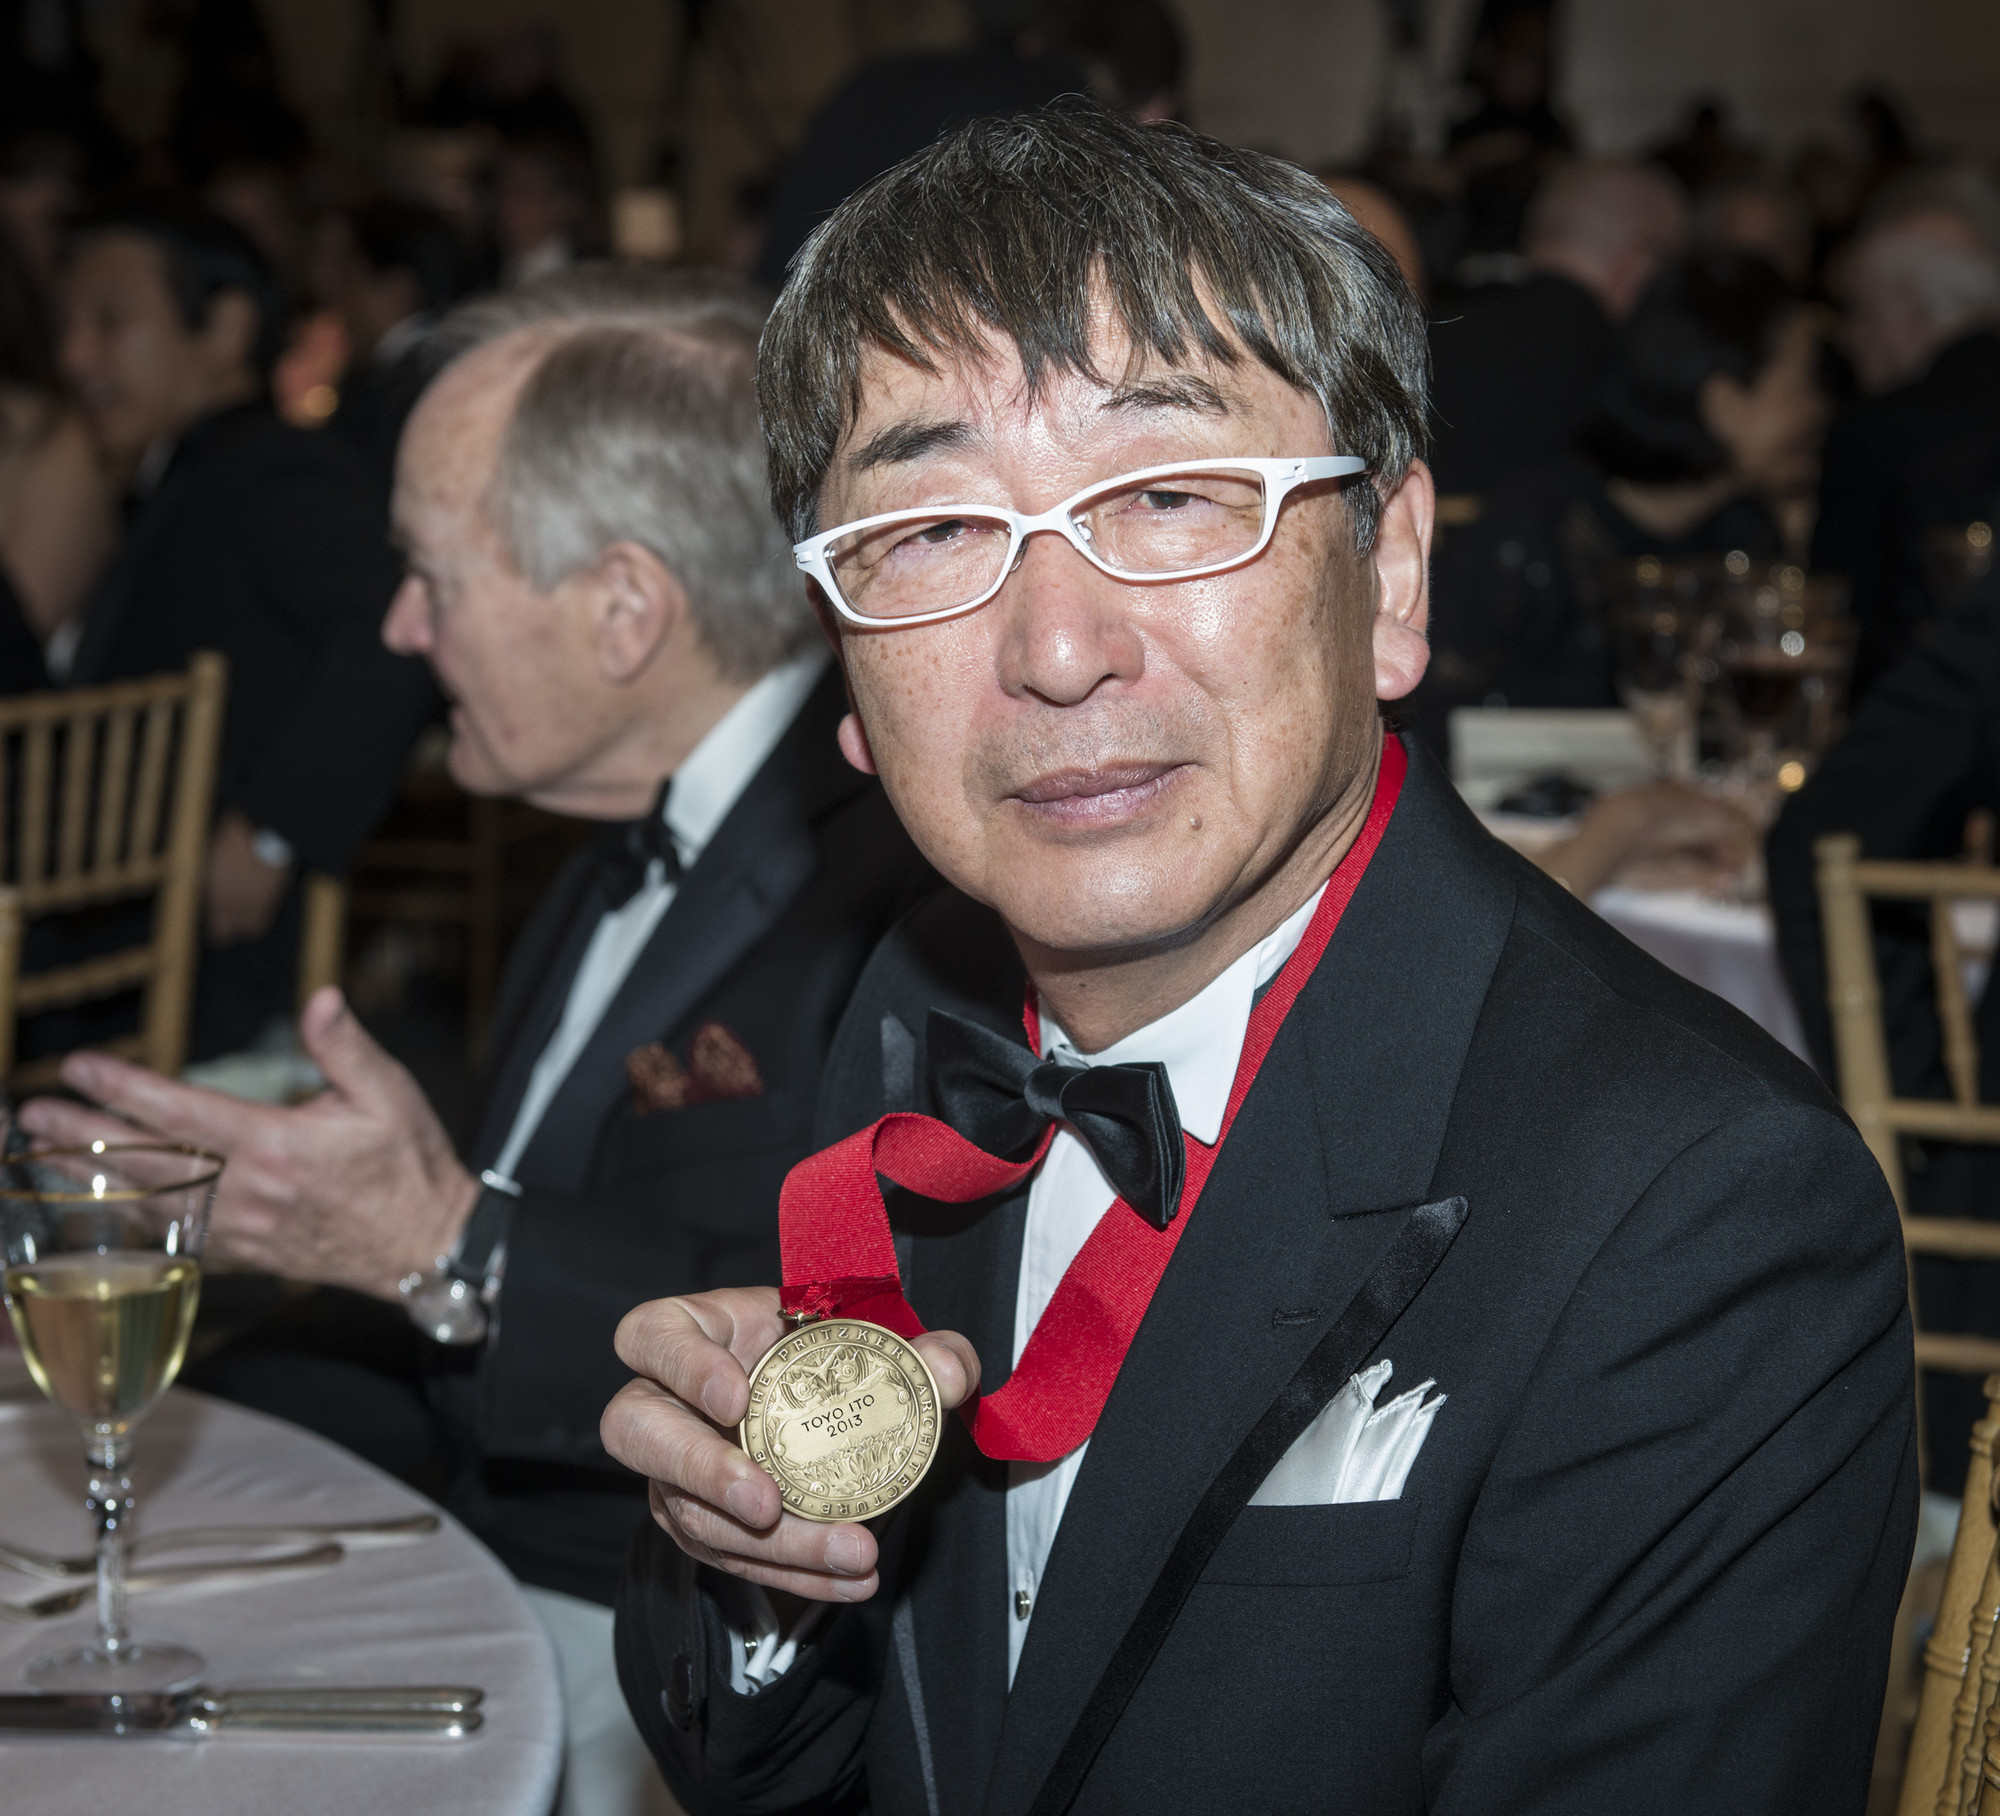 At a ceremony in the John F. Kennedy Library and Museum in Boston, Massachusetts, Japanese architect Toyo Ito received his Pritzker Architecture Prize medal and $100,000 grant from Thomas J. Pritzker, chairman of The Hyatt Foundation which has sponsored the worldwide honor since its founding in 1979. The ceremony was held before a black tie audience of over 300 guests of the Foundation, including many of ItoÕs present and past staff members, previous laureates of the prize, as well as architects and fans of architecture from around the world. on May 29, 2013. Toyo Ito of Japan proudly shows his medal while seated at the dinner following the ceremony at the John F. Kennedy Library and Museum where he received the honor. Lord Palumbo, chairman of the Pritzker Architecture Prize jury is to his left.